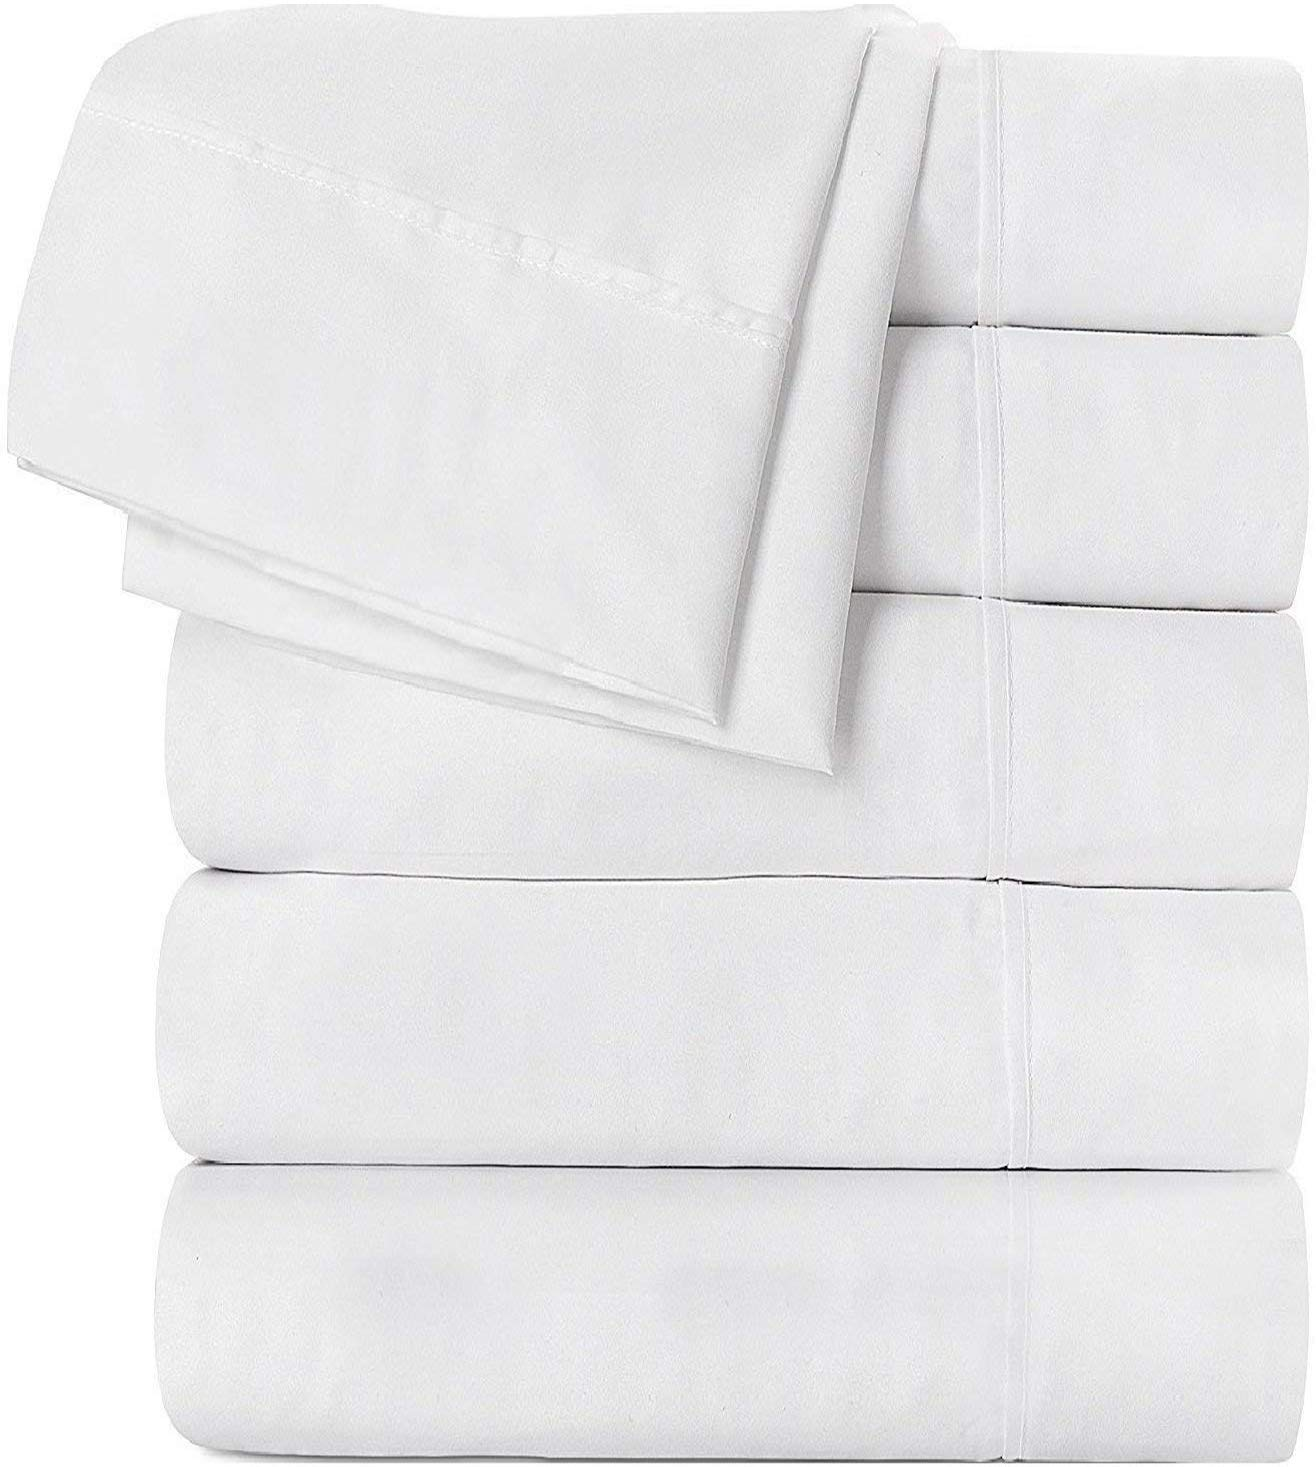 Pack of 6 KIng sized $39.99